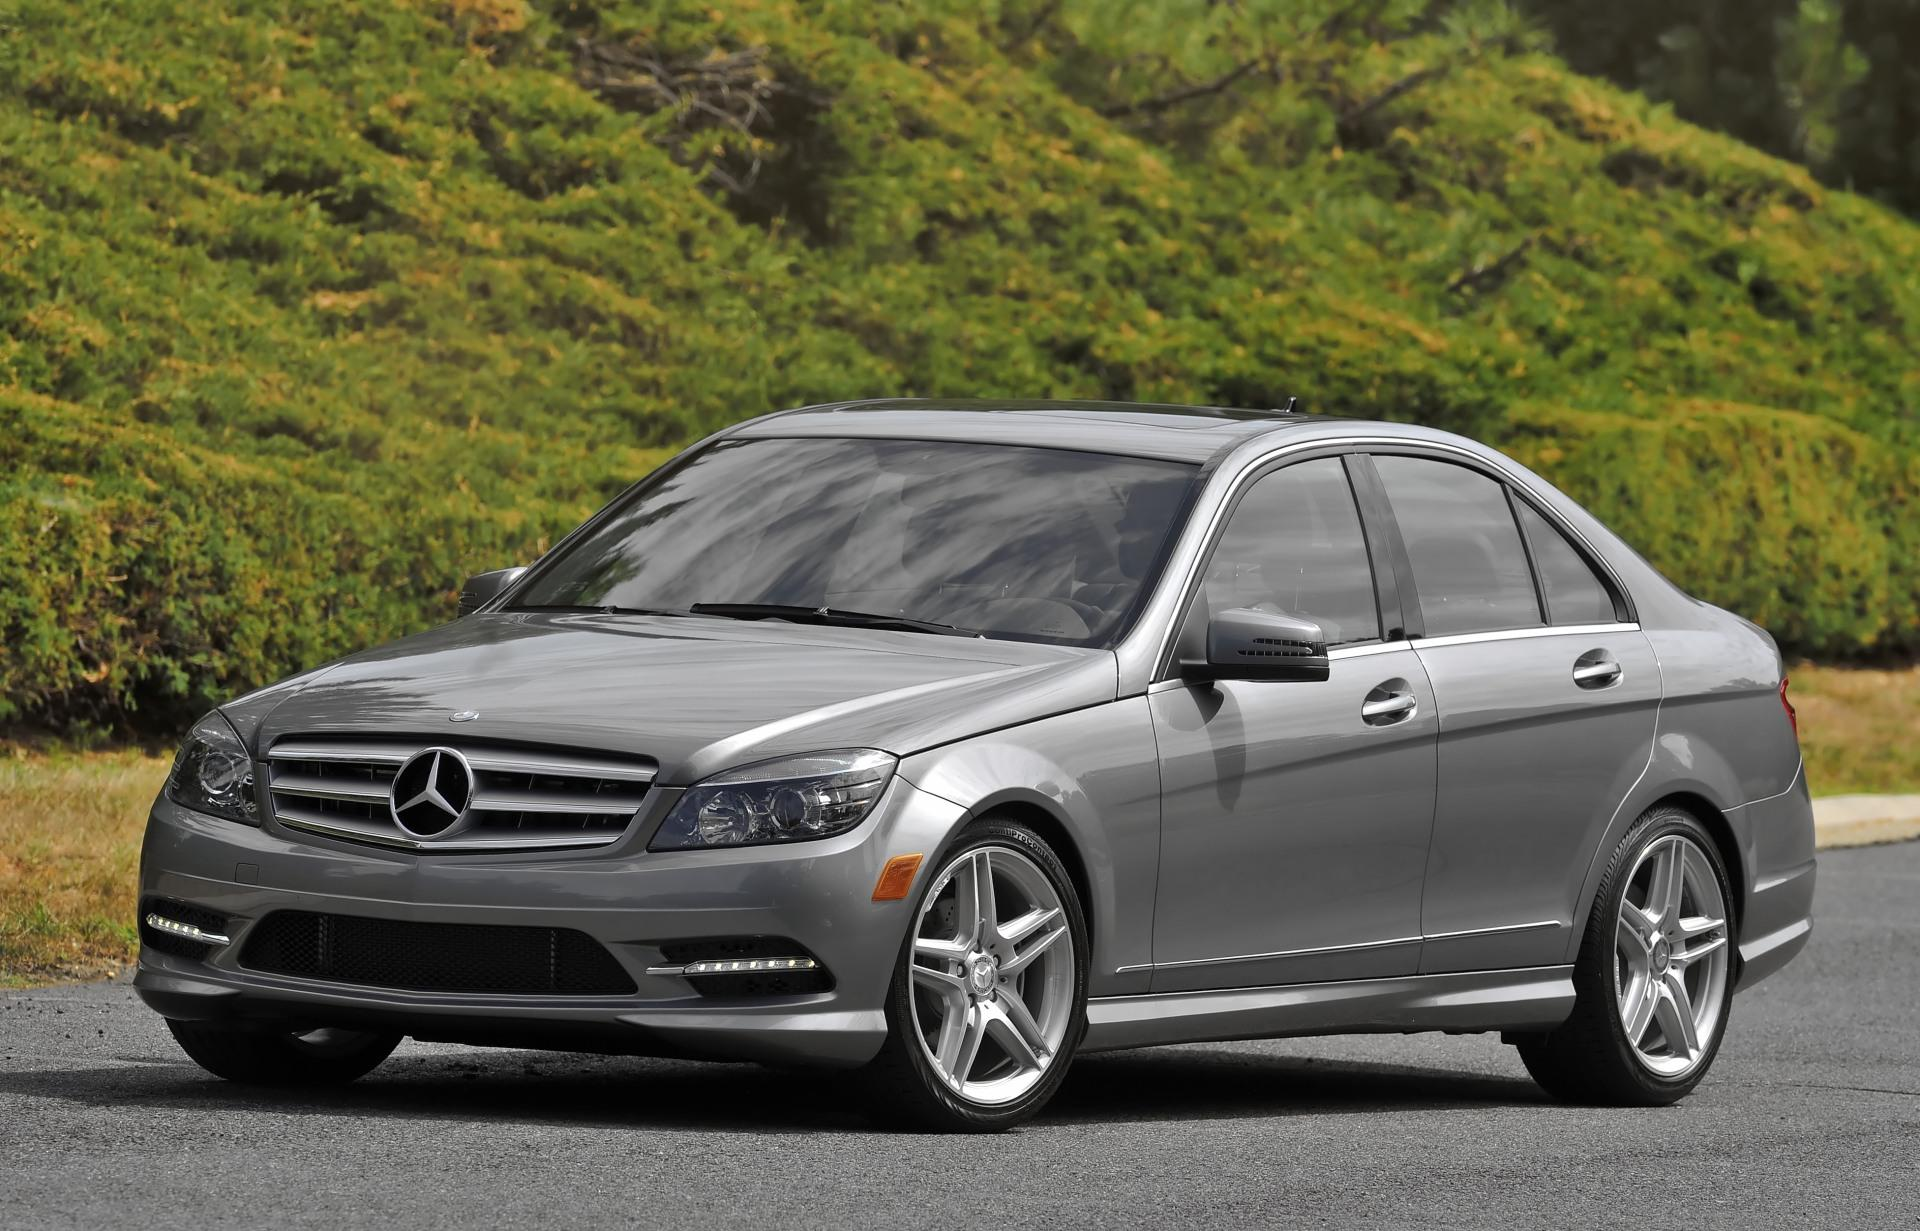 Mercedes benz c class cars specifications technical data for Mercedes benz 4 door